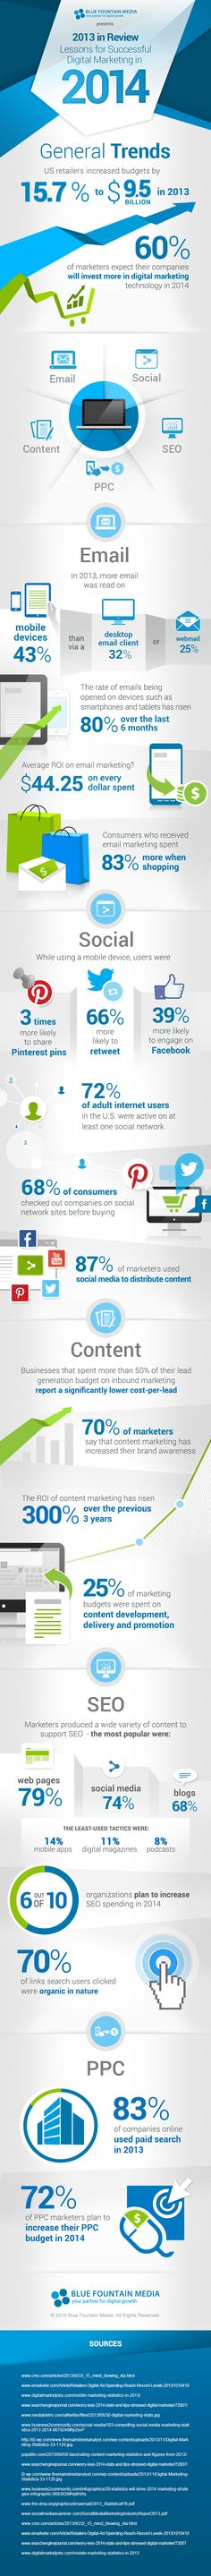 Hot Trends In Digital Marketing [Infographic]